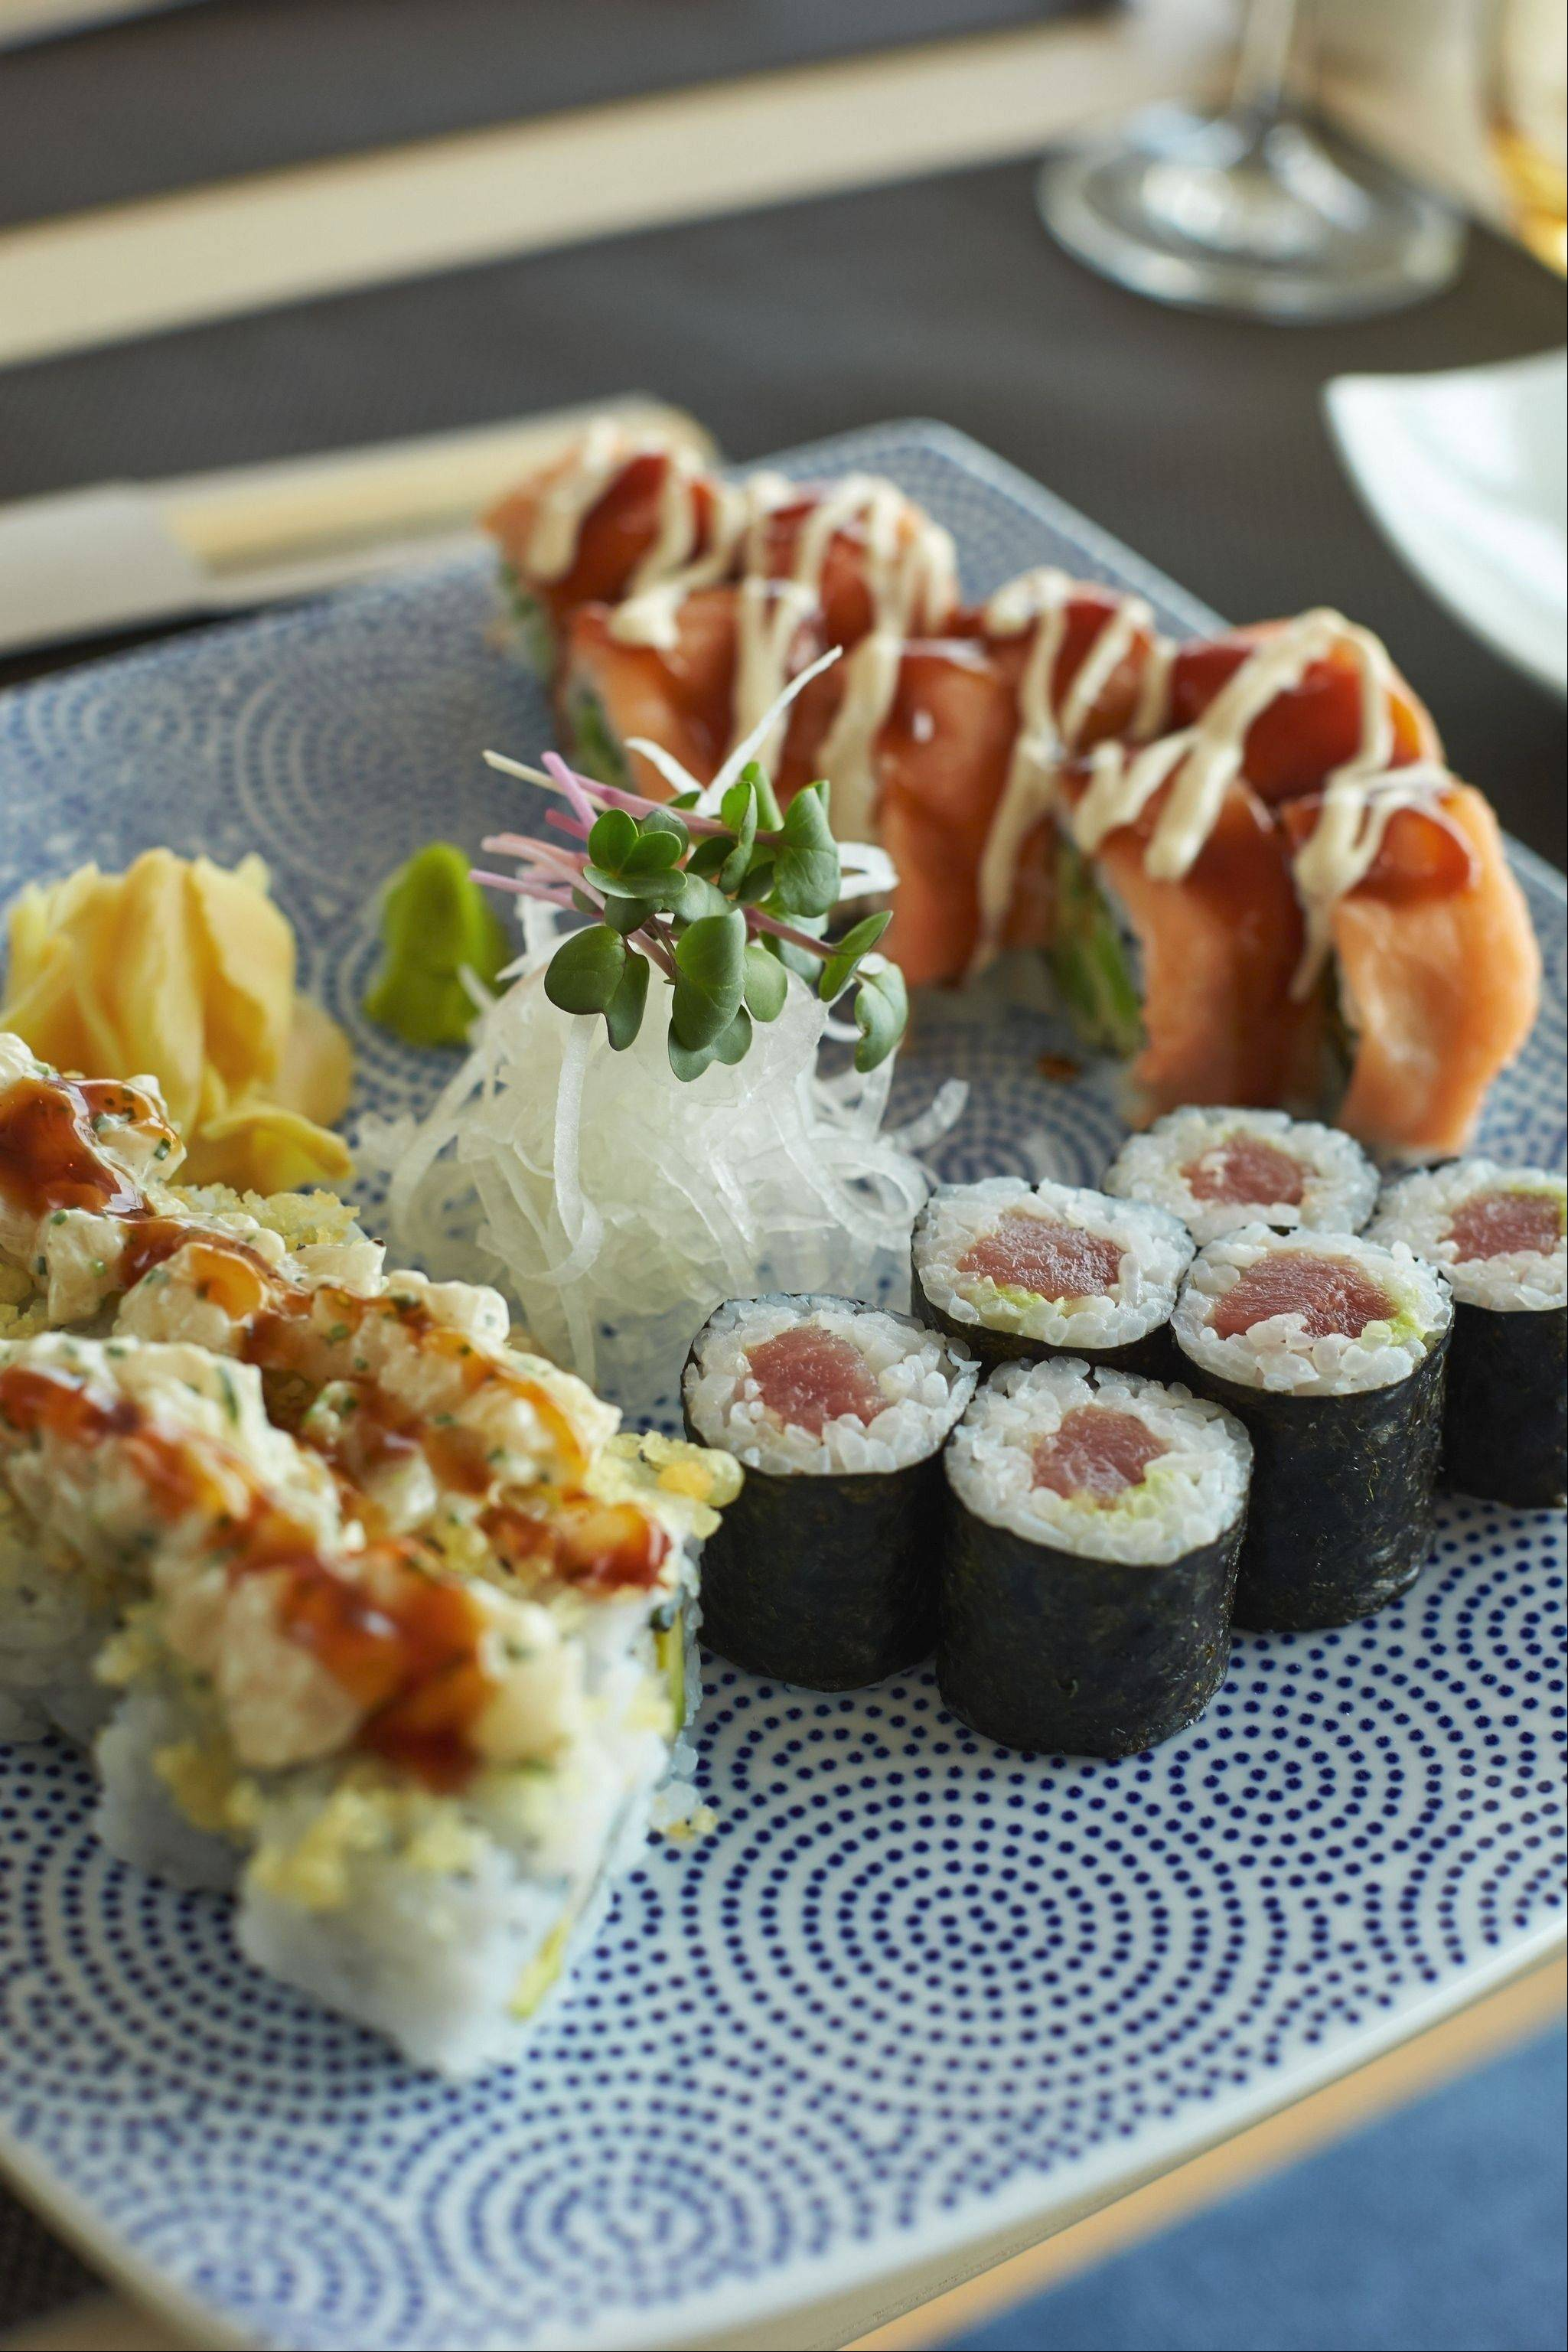 Sushi is a feast for the eyes as well as the palate in the specialty restaurant, Sakura.